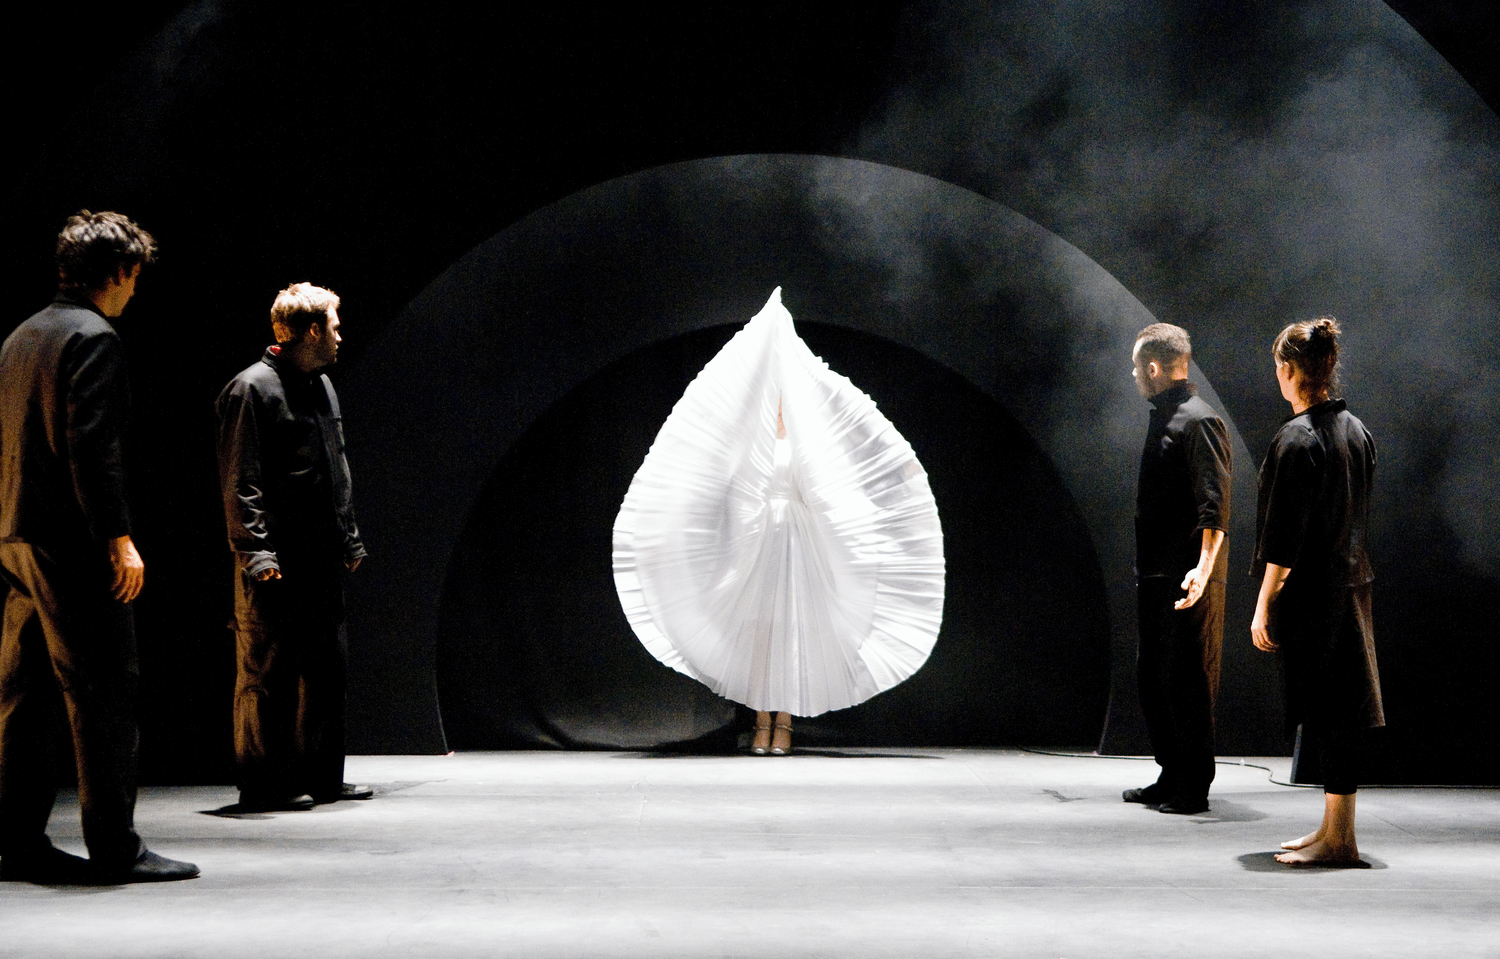 in the middle is a petal shape created out of fanning a pleated dress above a dancer's head.  4 performers watch the petal